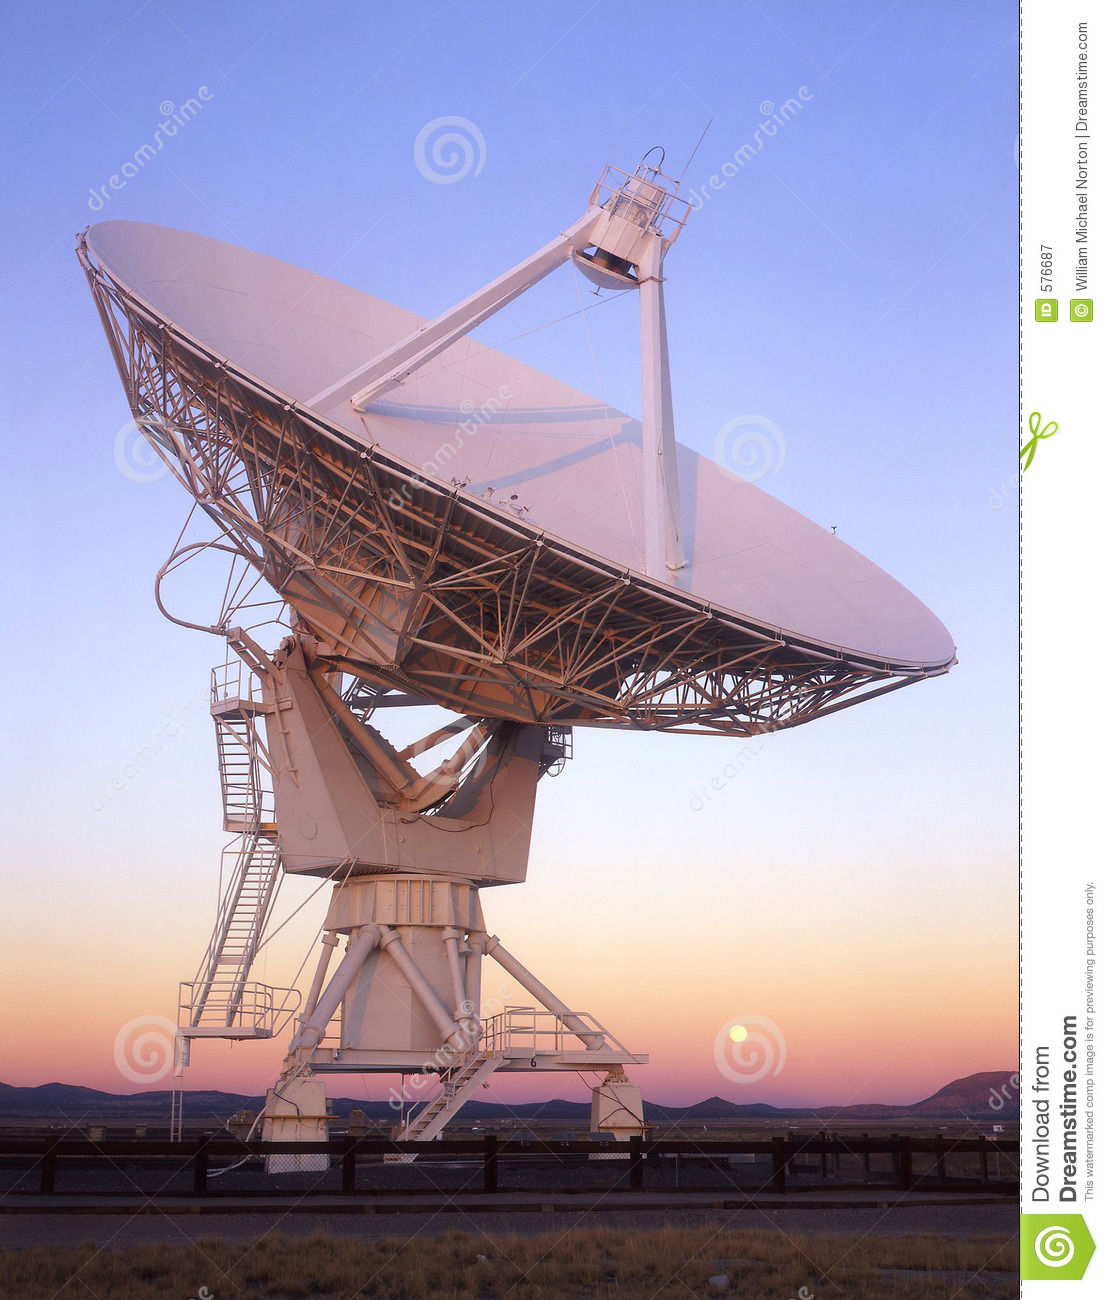 satellite dish full moon stock image image of array 576687